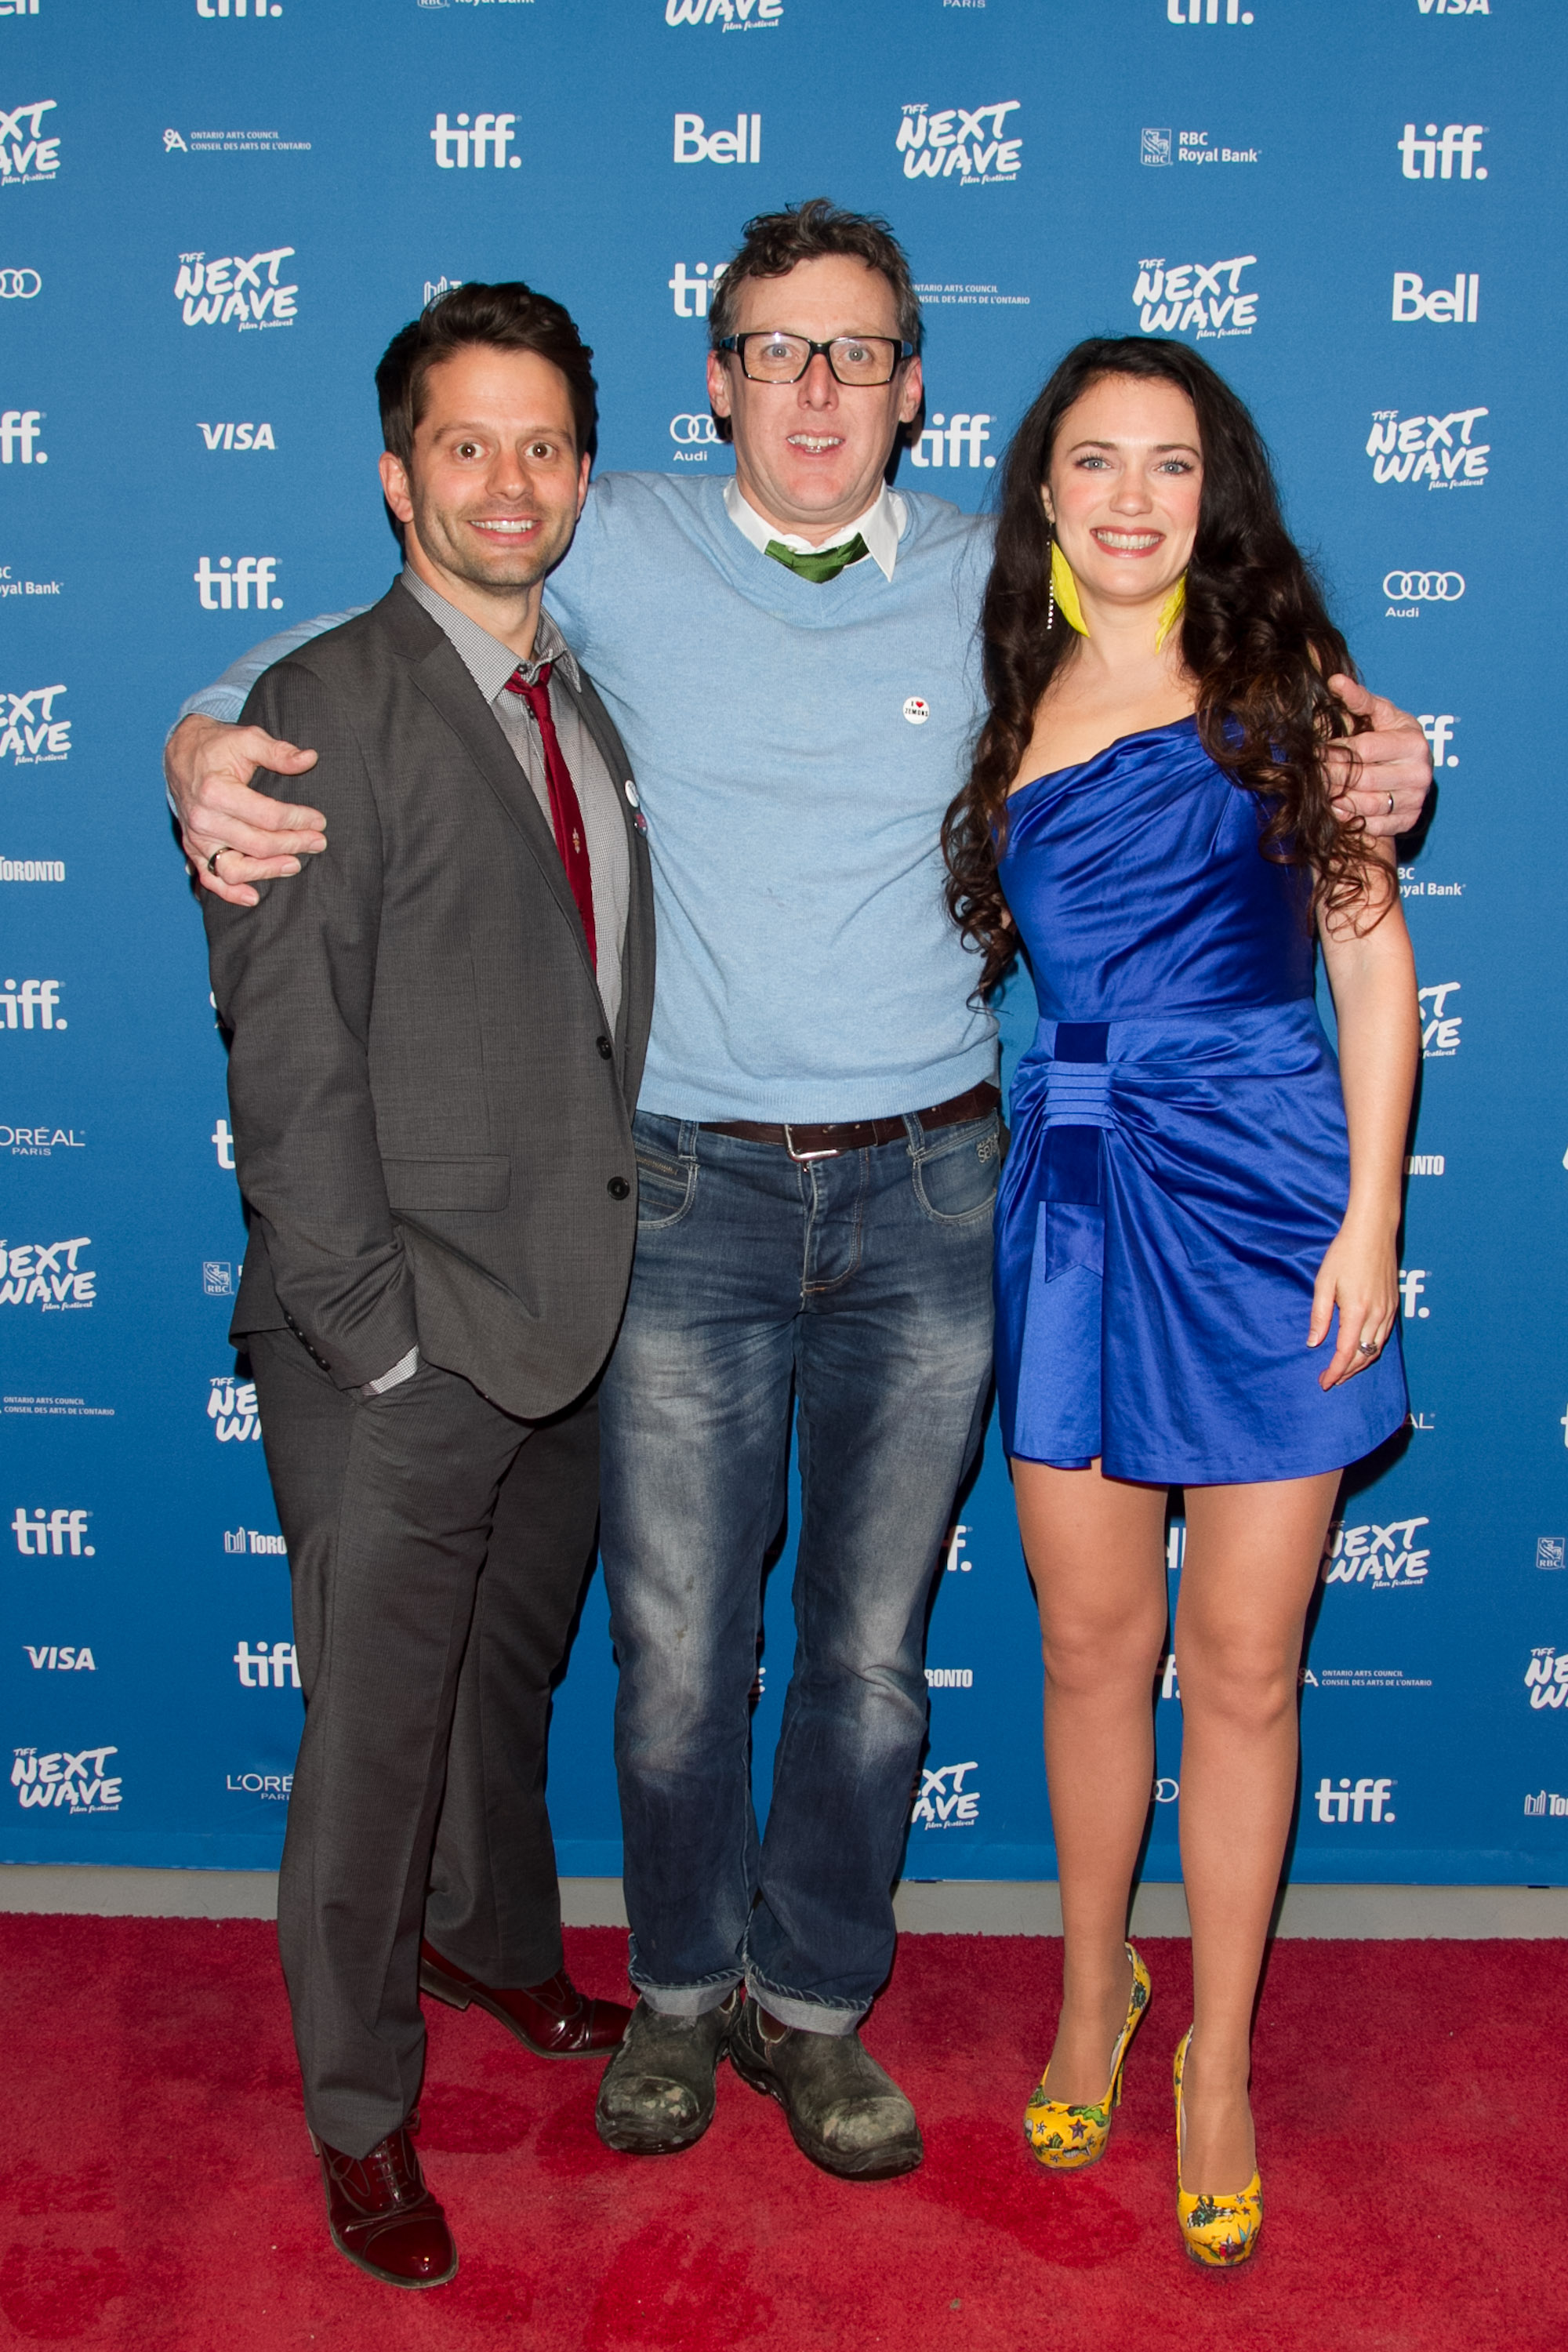 Tim Doiron (Actor/Writer) with 3D Stereographer Jeff Packer and April Mullen (Director/Actor) at the North American Premiere of Dead Before Dawn 3D.  TIFF Next Wave Film Festival.  Photo by: Sarjoun Faour, WireImage/Getty for TIFF